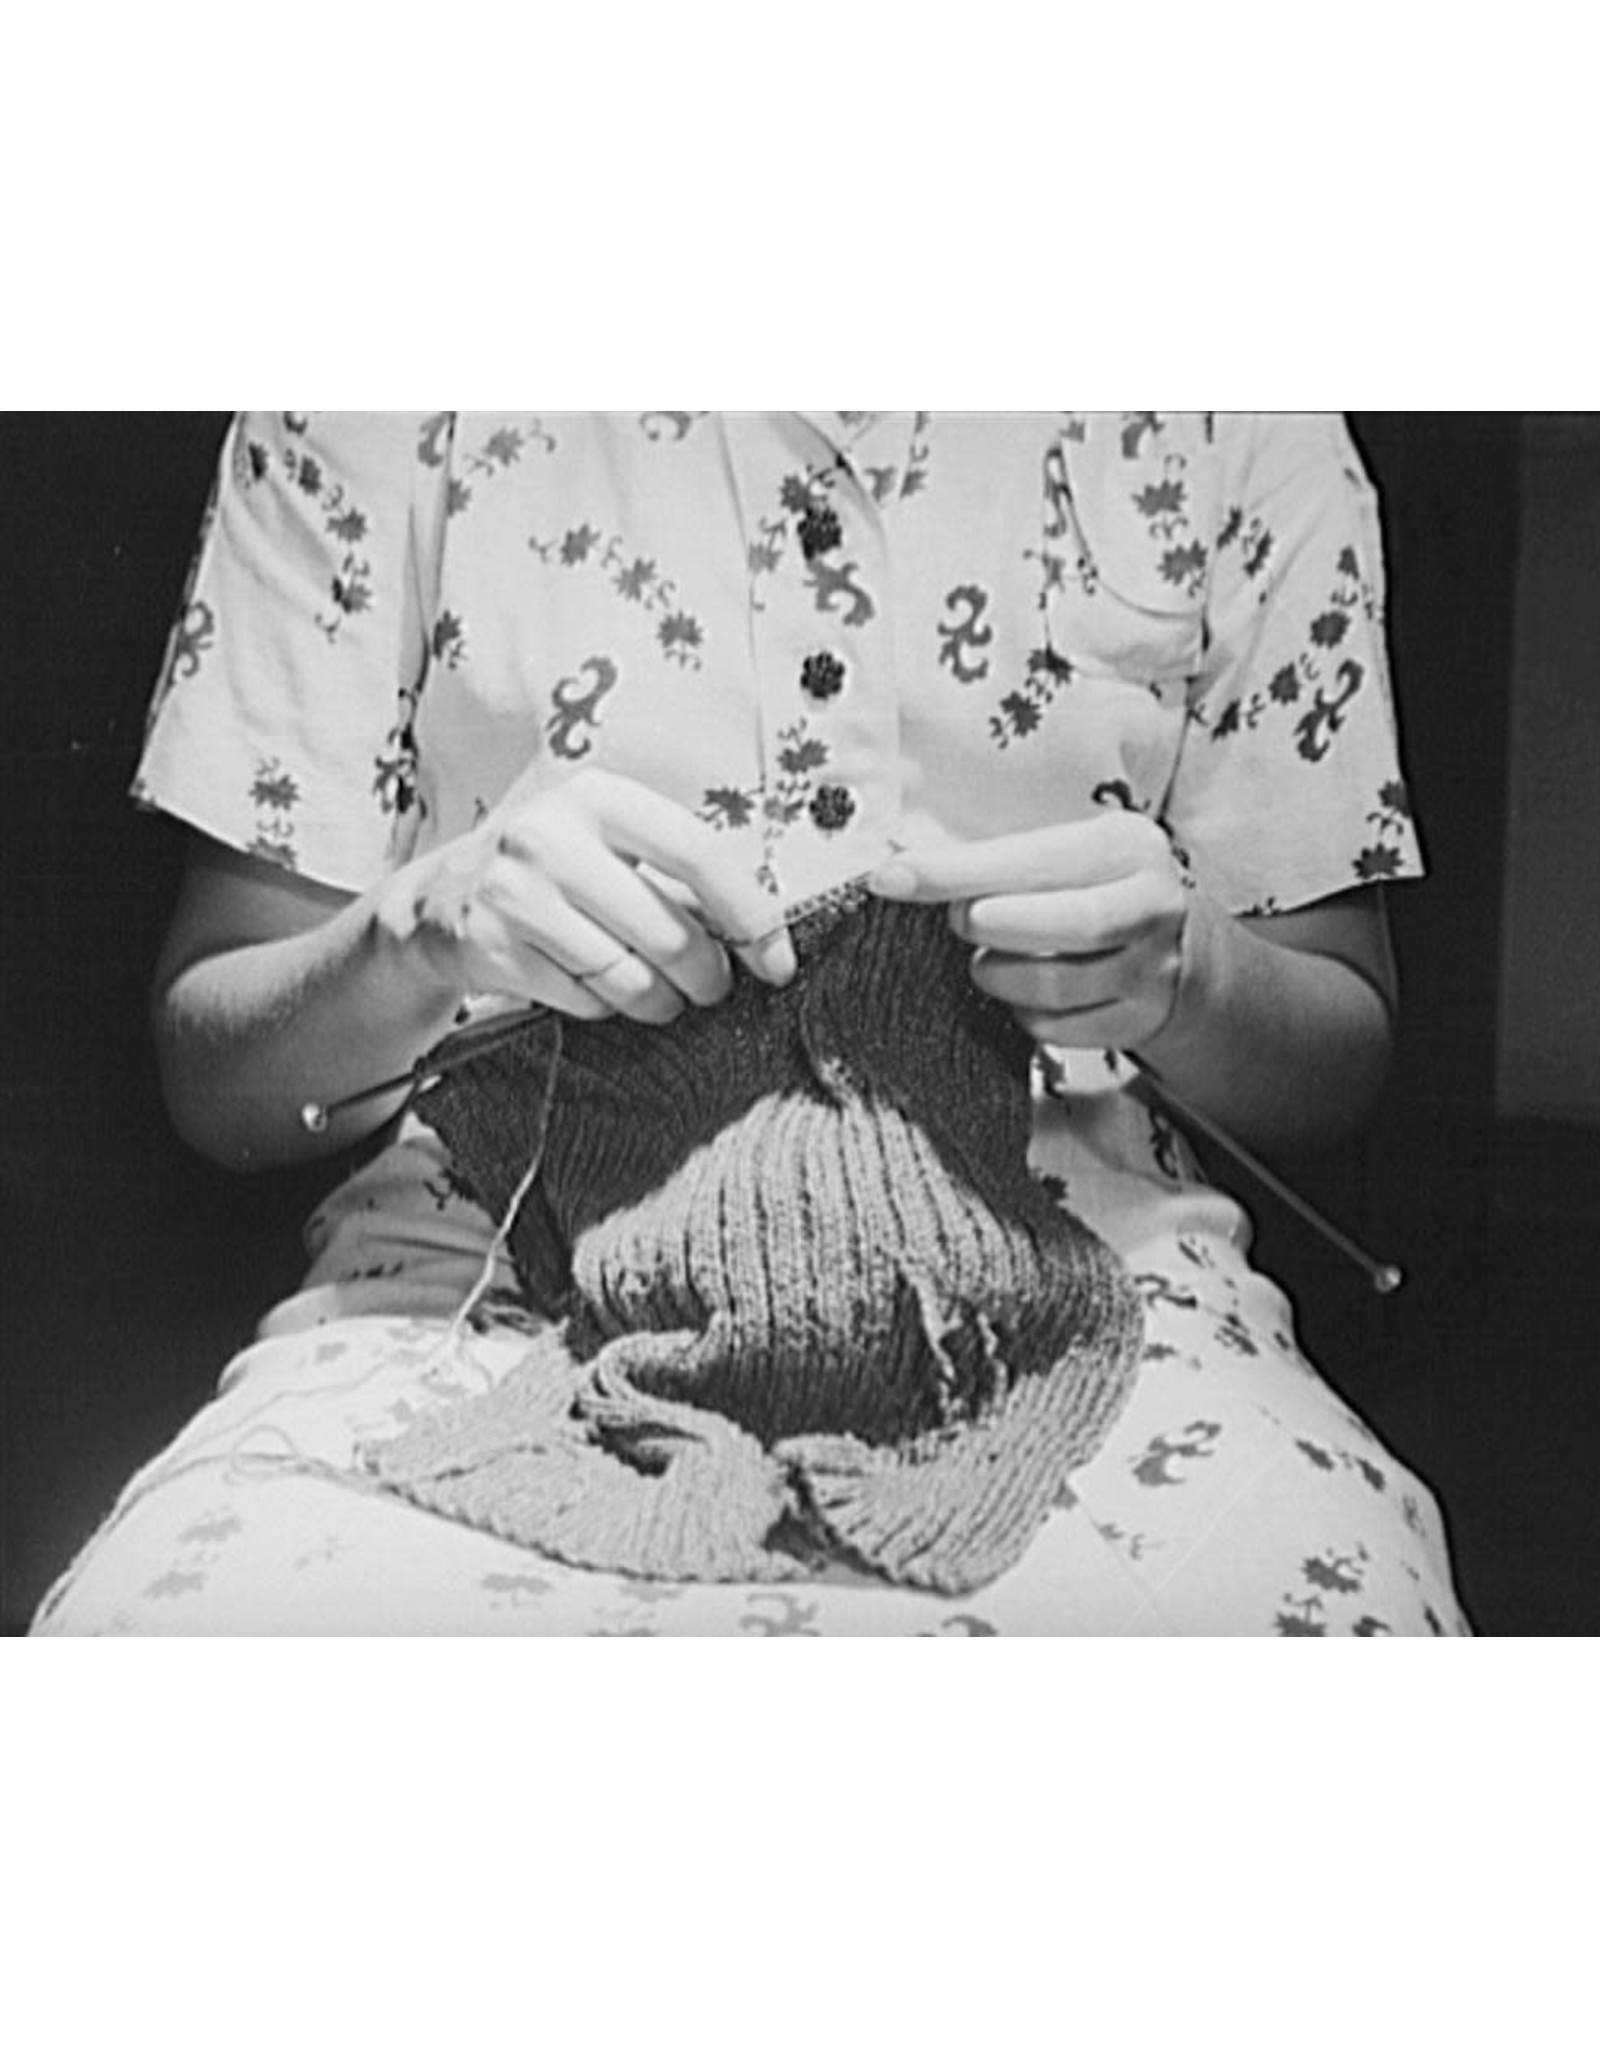 02/02 and 02/09 Beginning Knitting Workshop 6:00-8:00 PM